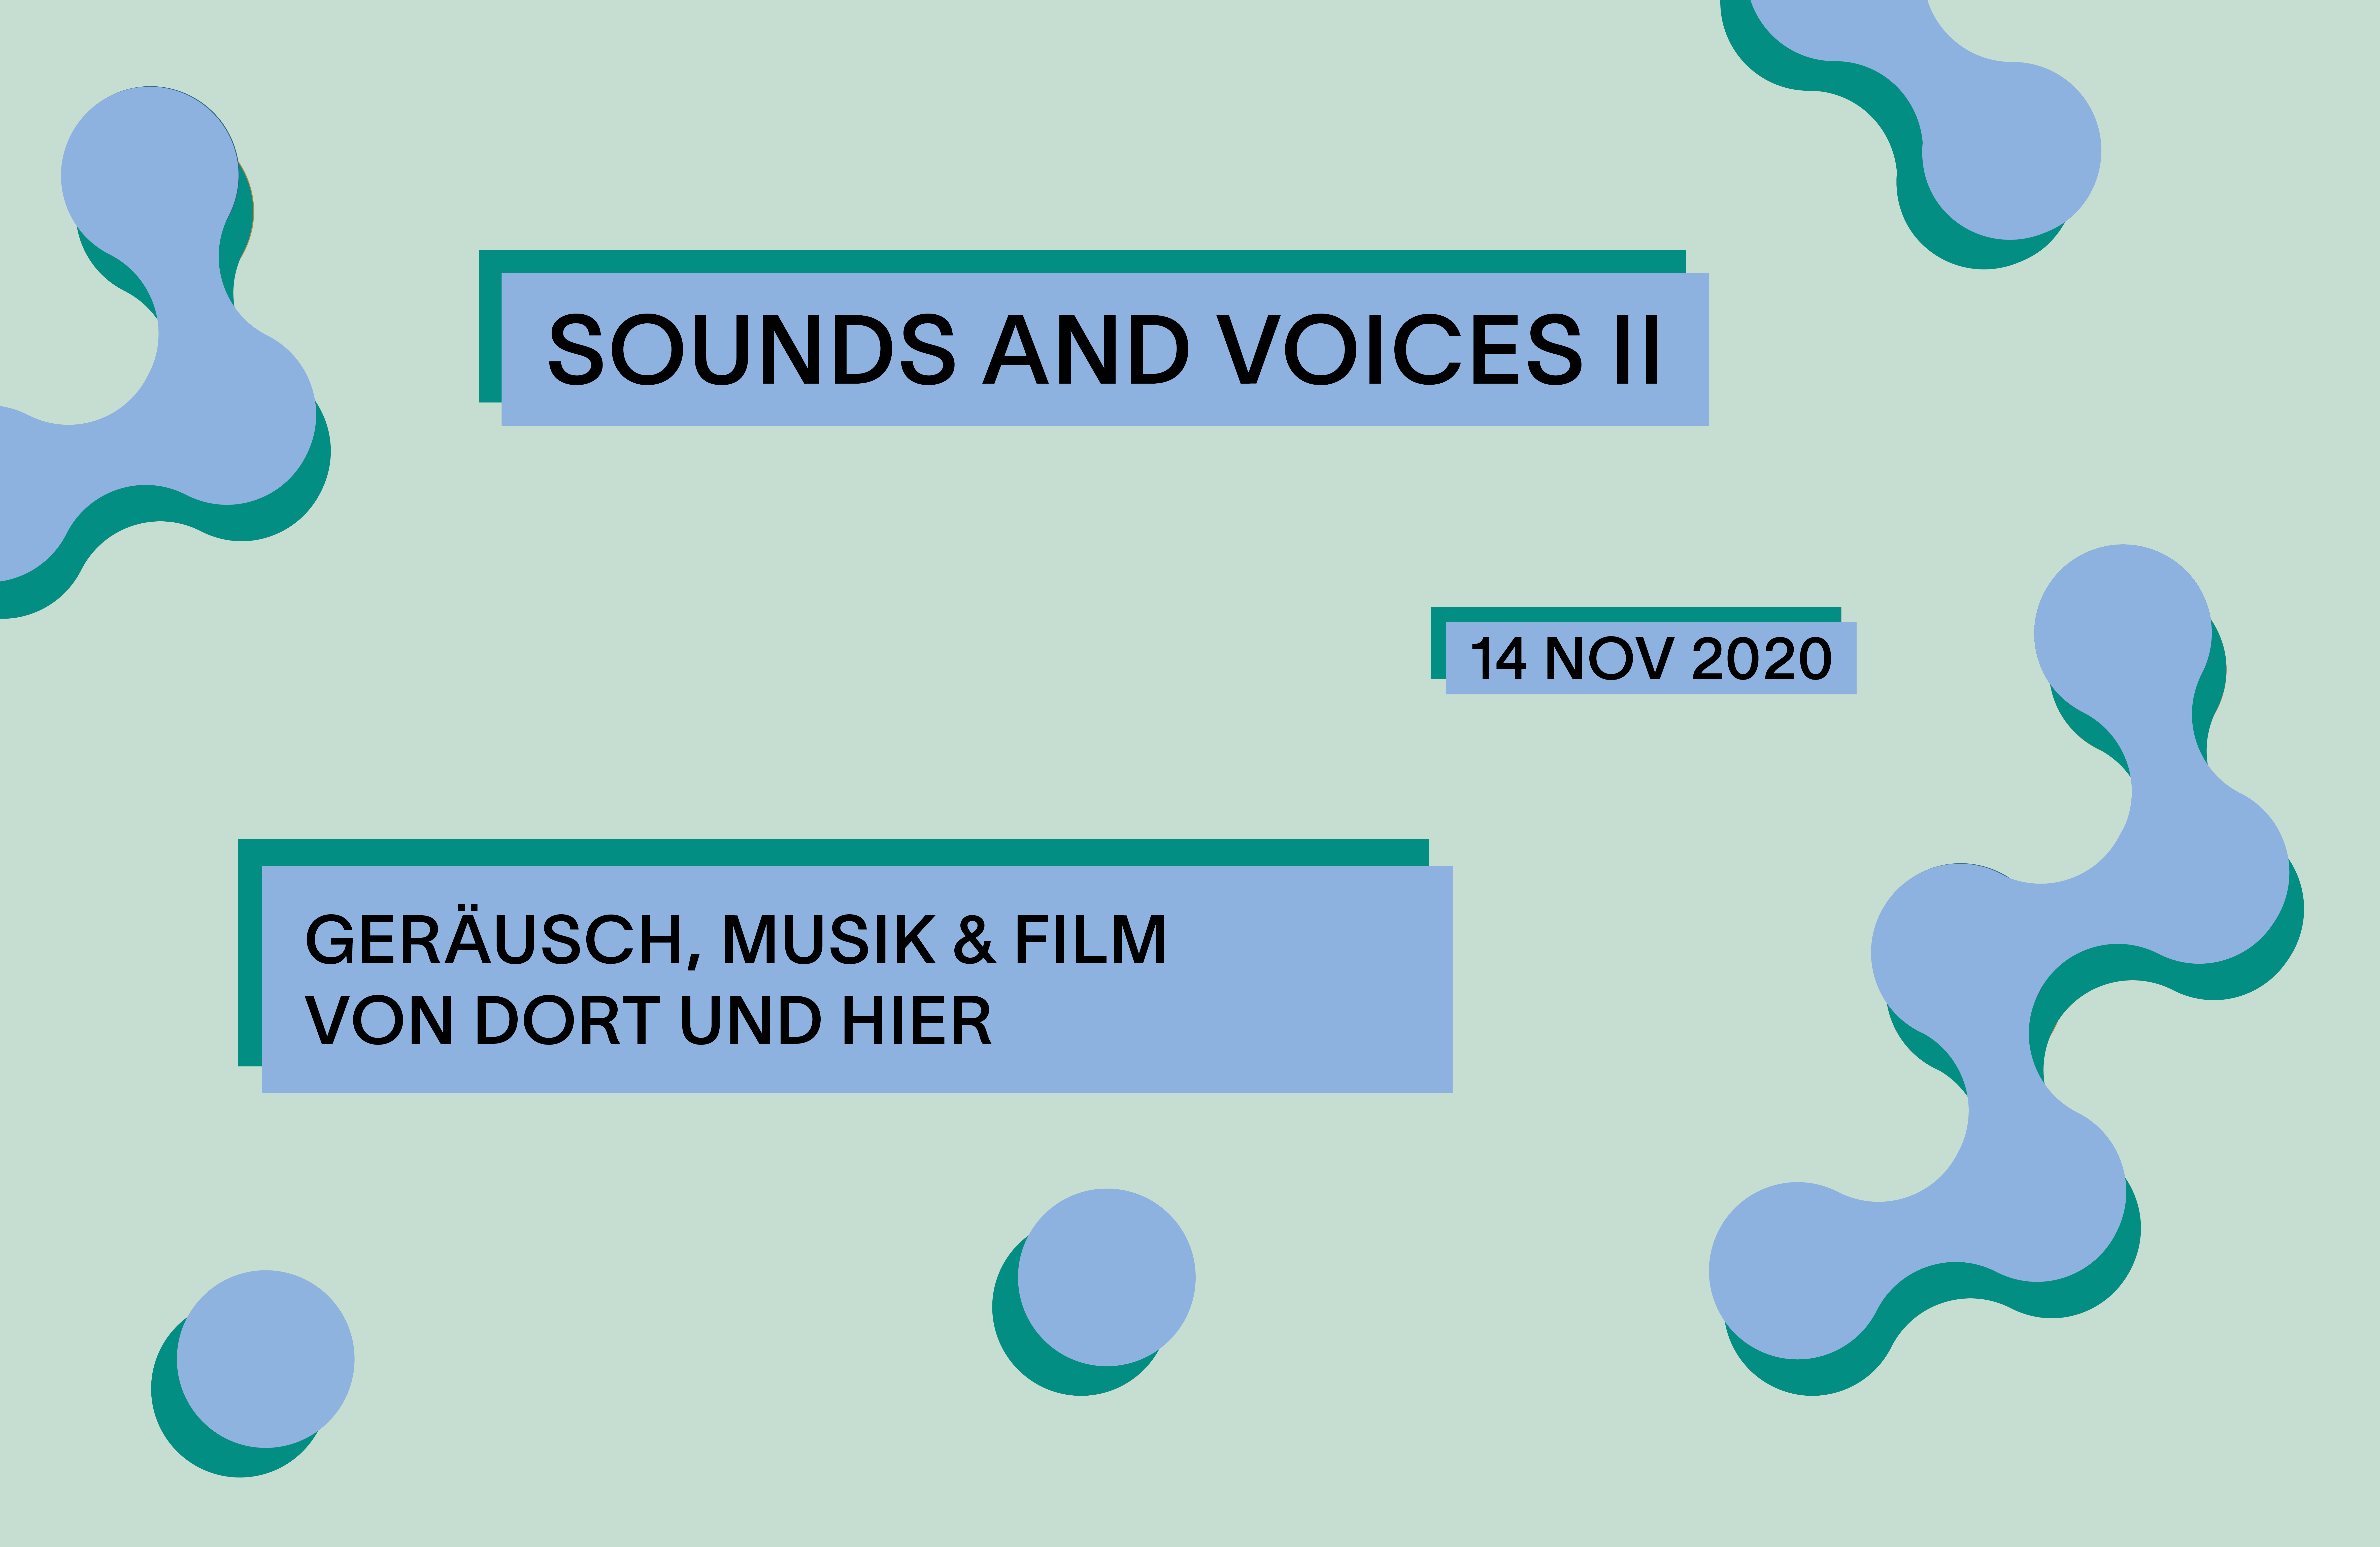 sounds and voices II